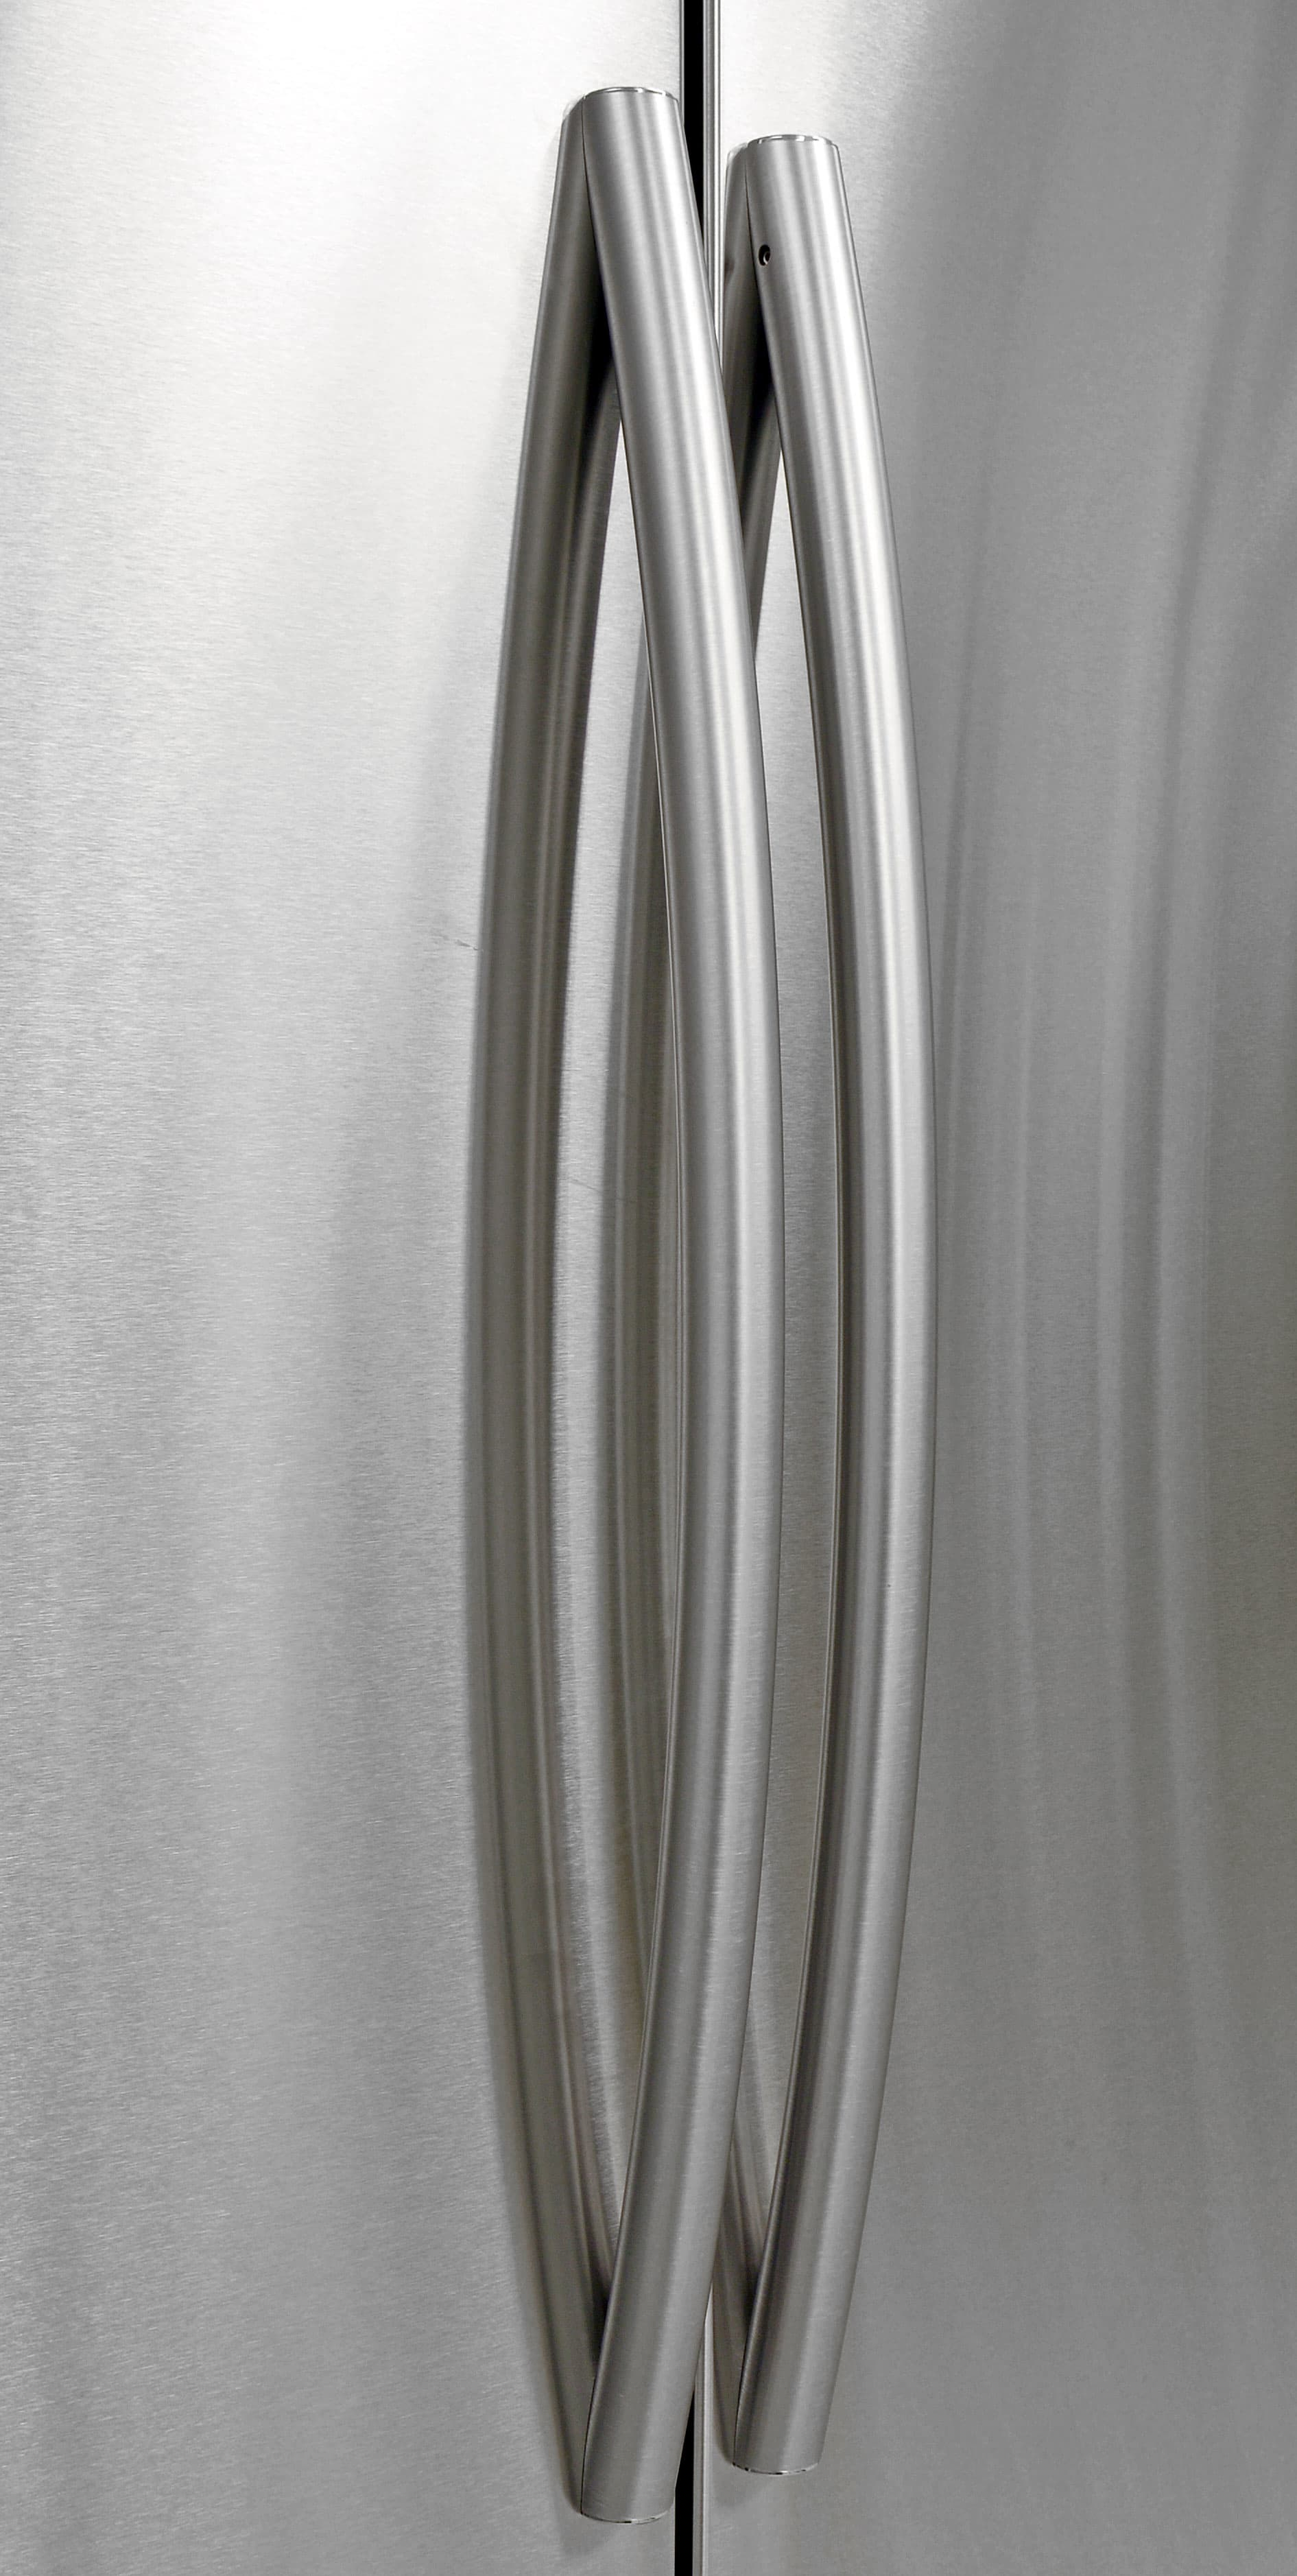 Curved handles give the Samsung RF260BEAESR's straightforward exterior a touch of elegance.